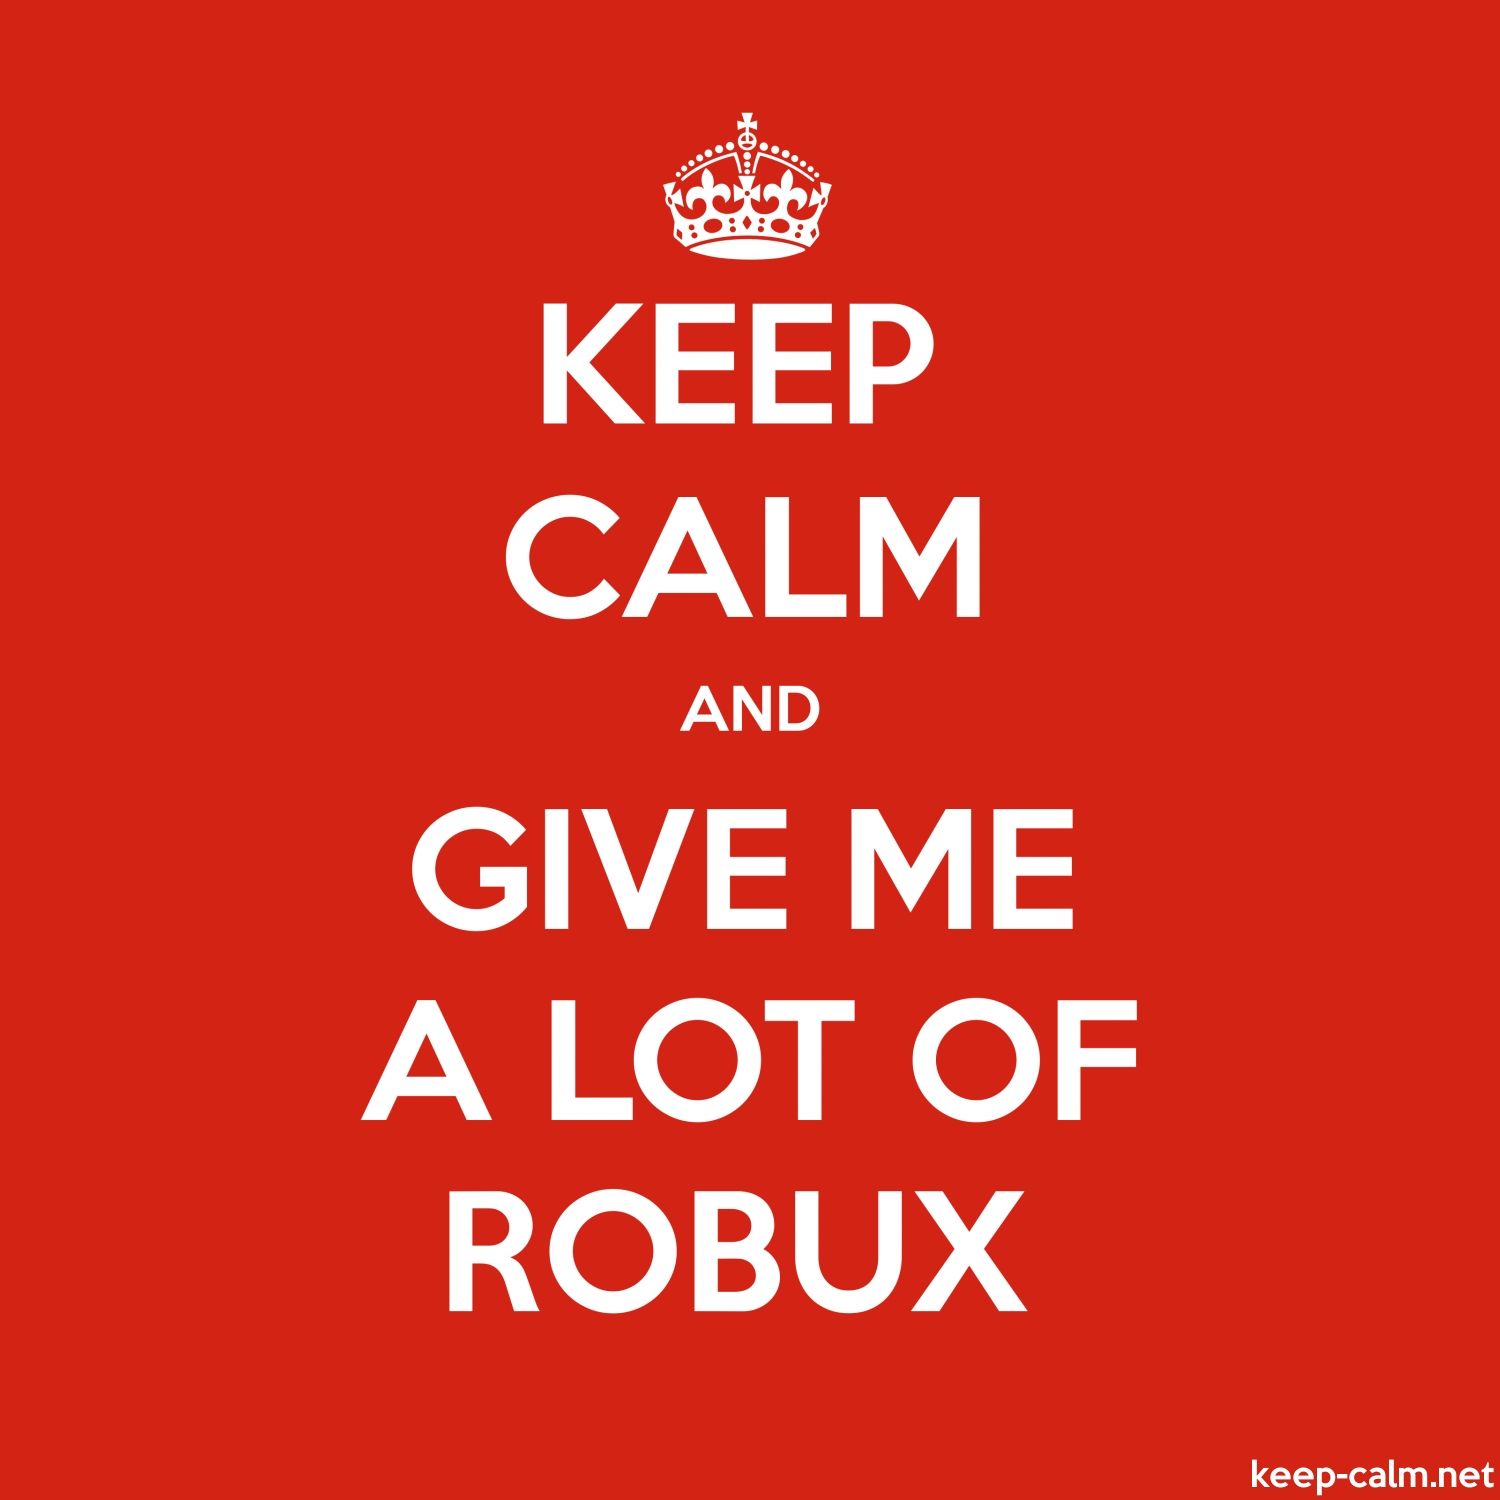 How To Hack Almost Any Game Roblox Hack Za Robux - Keep Calm And Give Me A Lot Of Robux Keep Calm Net